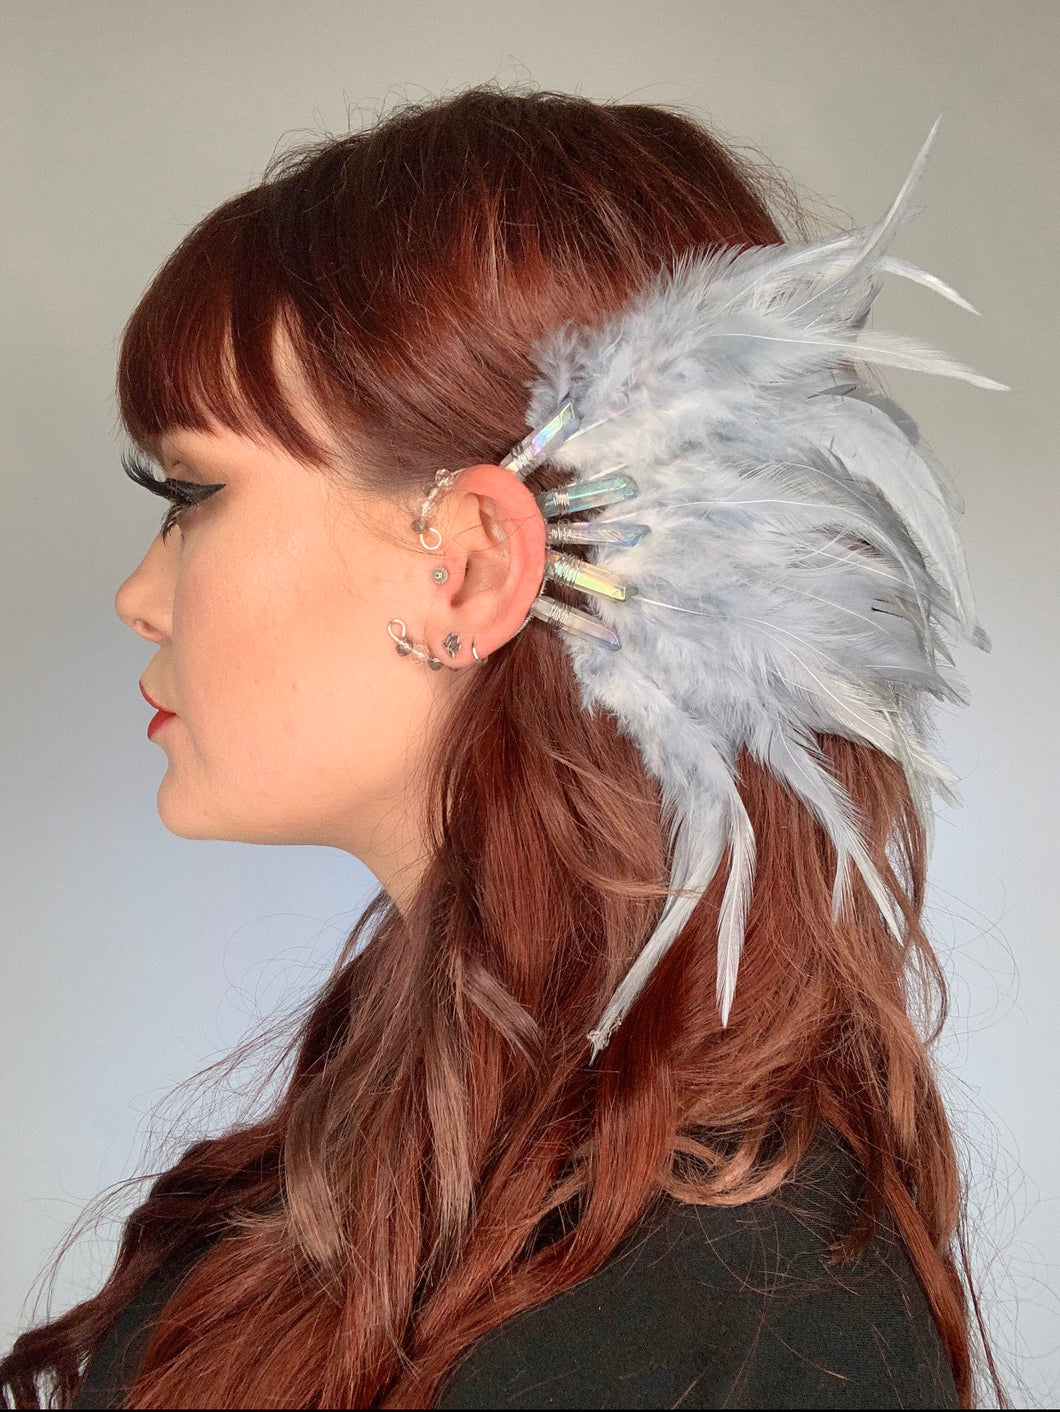 Gray Iridescent Quartz and Feather Ear Cuff